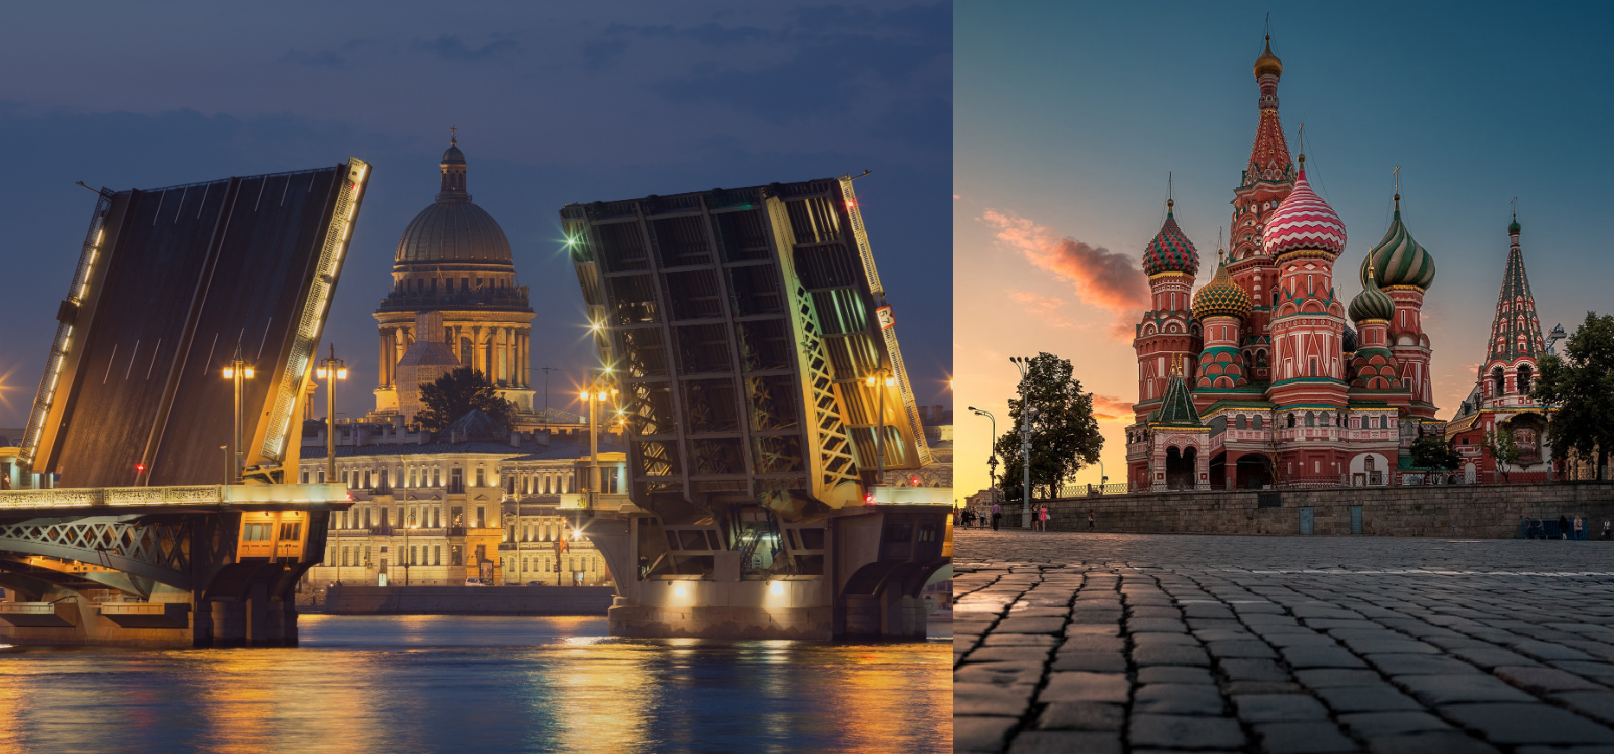 Tours to St. Petersburg and Moscow